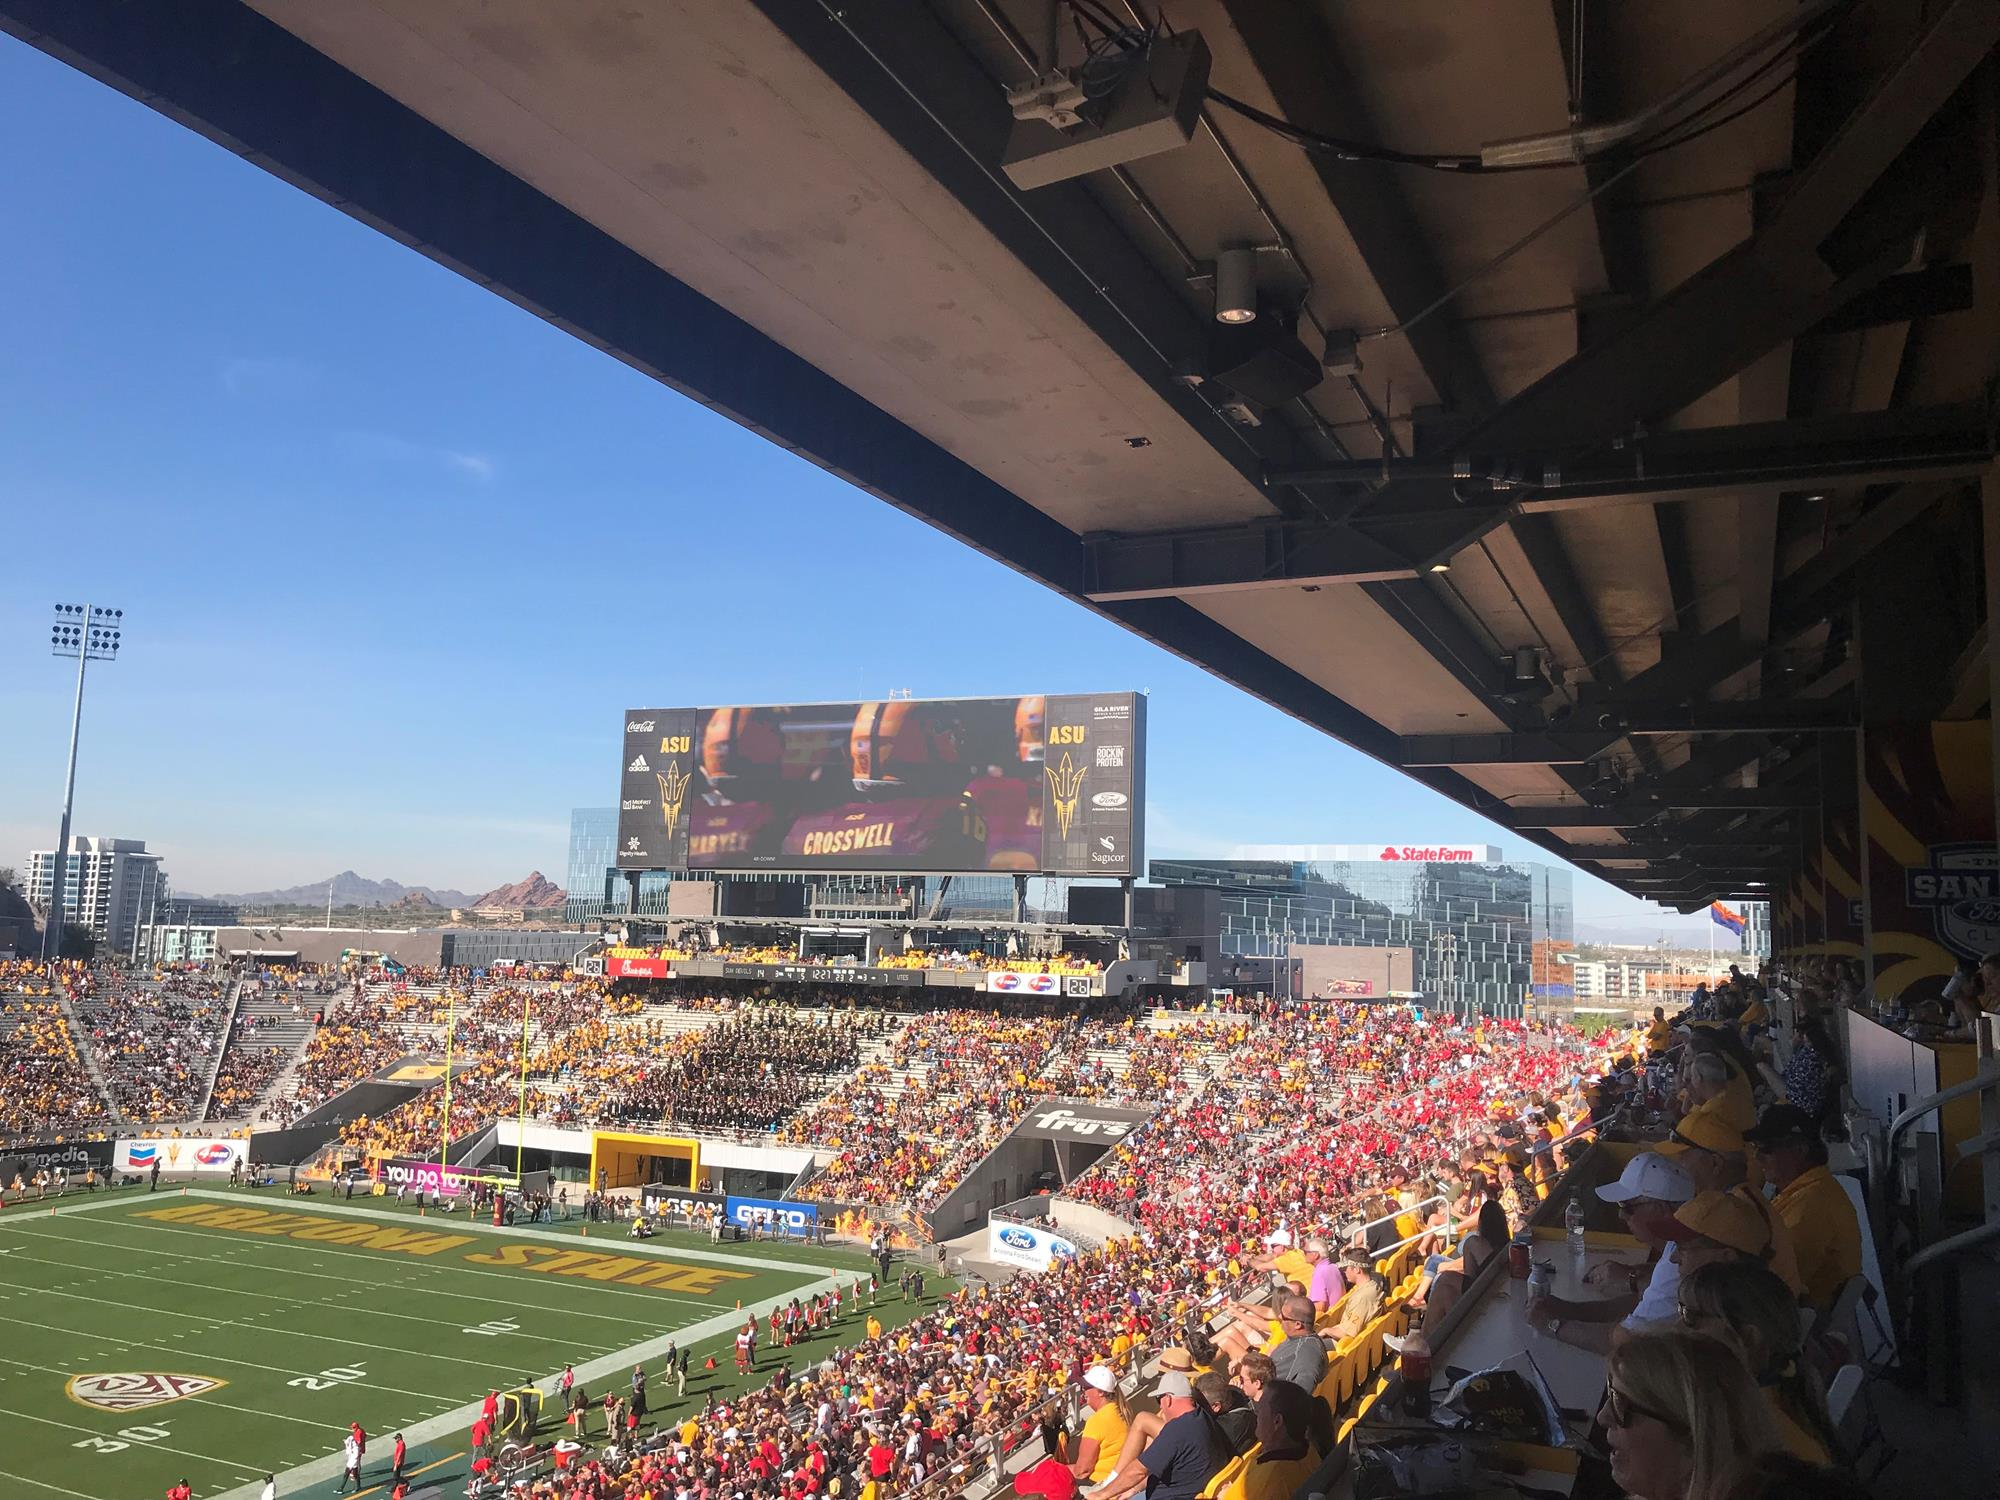 Frank Kush Field/Sun Devil Stadium - Facilities - Arizona